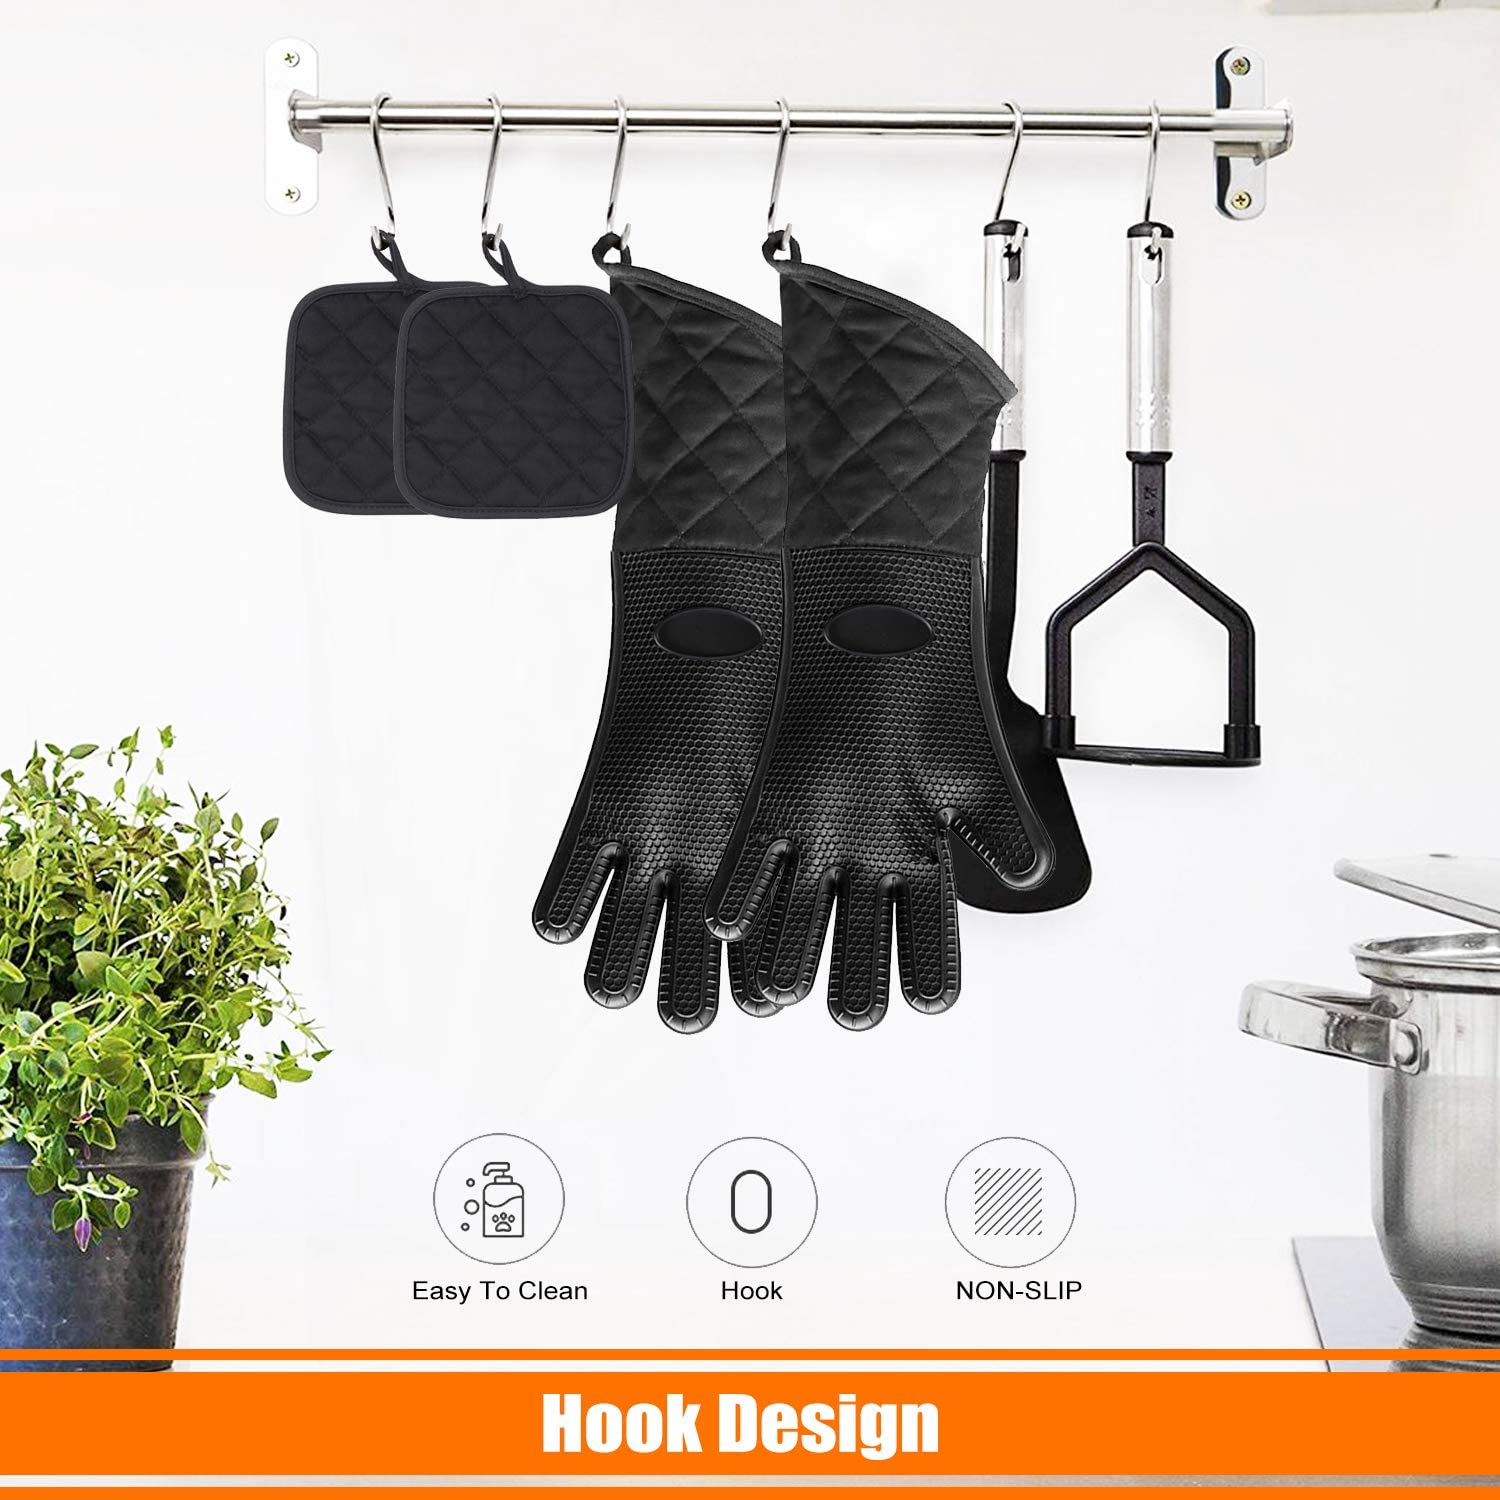 Cooking Suitable for Barbecue Baking selizwold Extra Long Barbecue Gloves with Pot Holder Waterproof Non-Slip Silicone Heat-Resistant Gloves 4-Piece Oven Glove Set